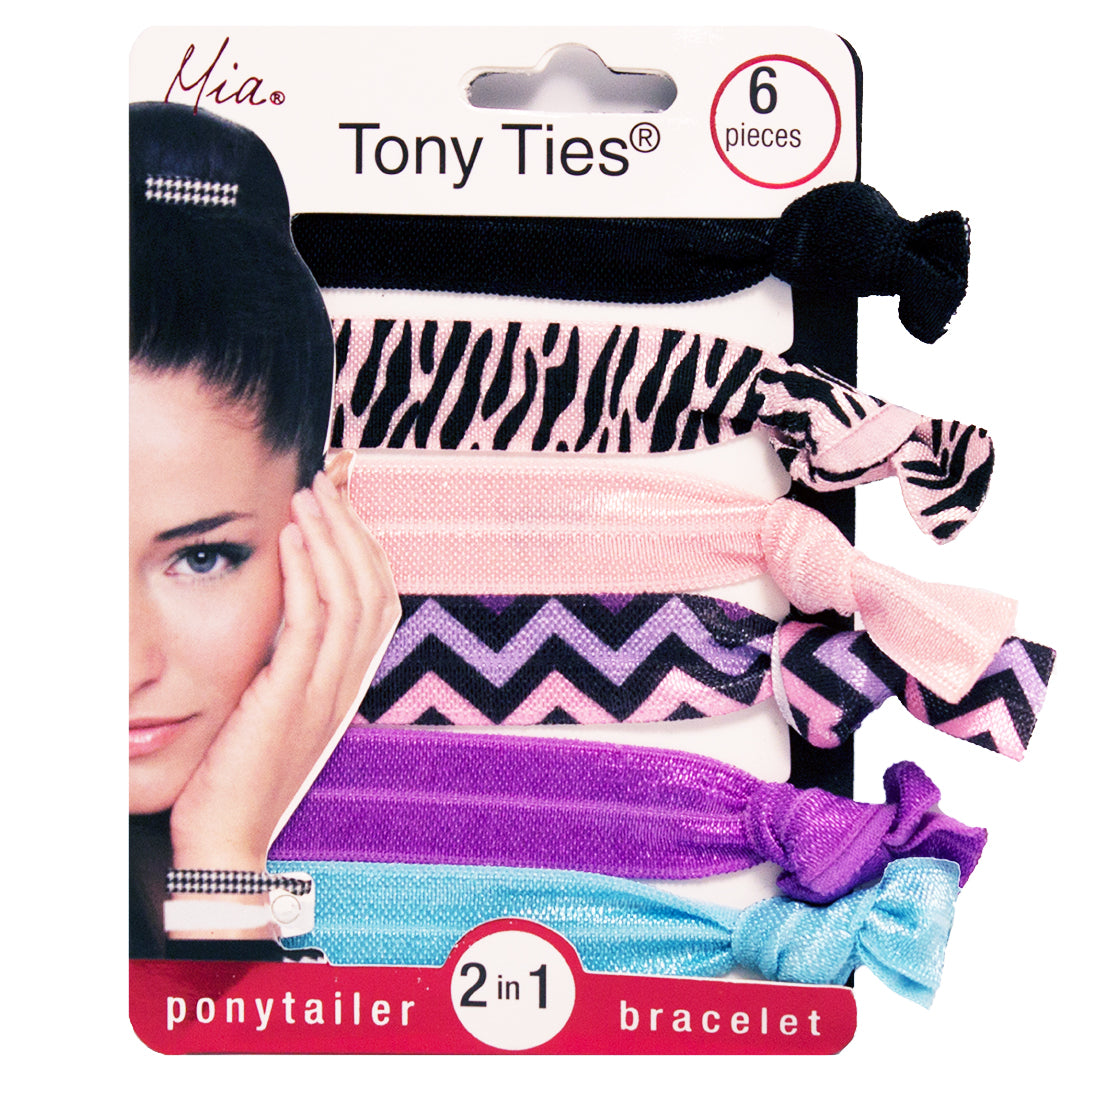 Mia® Tony Ties® knotted ribbon hair ties - black, zebra, pink, purple, blue, chevron - 6 pieces in packaging - designed by #MiaKaminski founder of Mia® Beauty